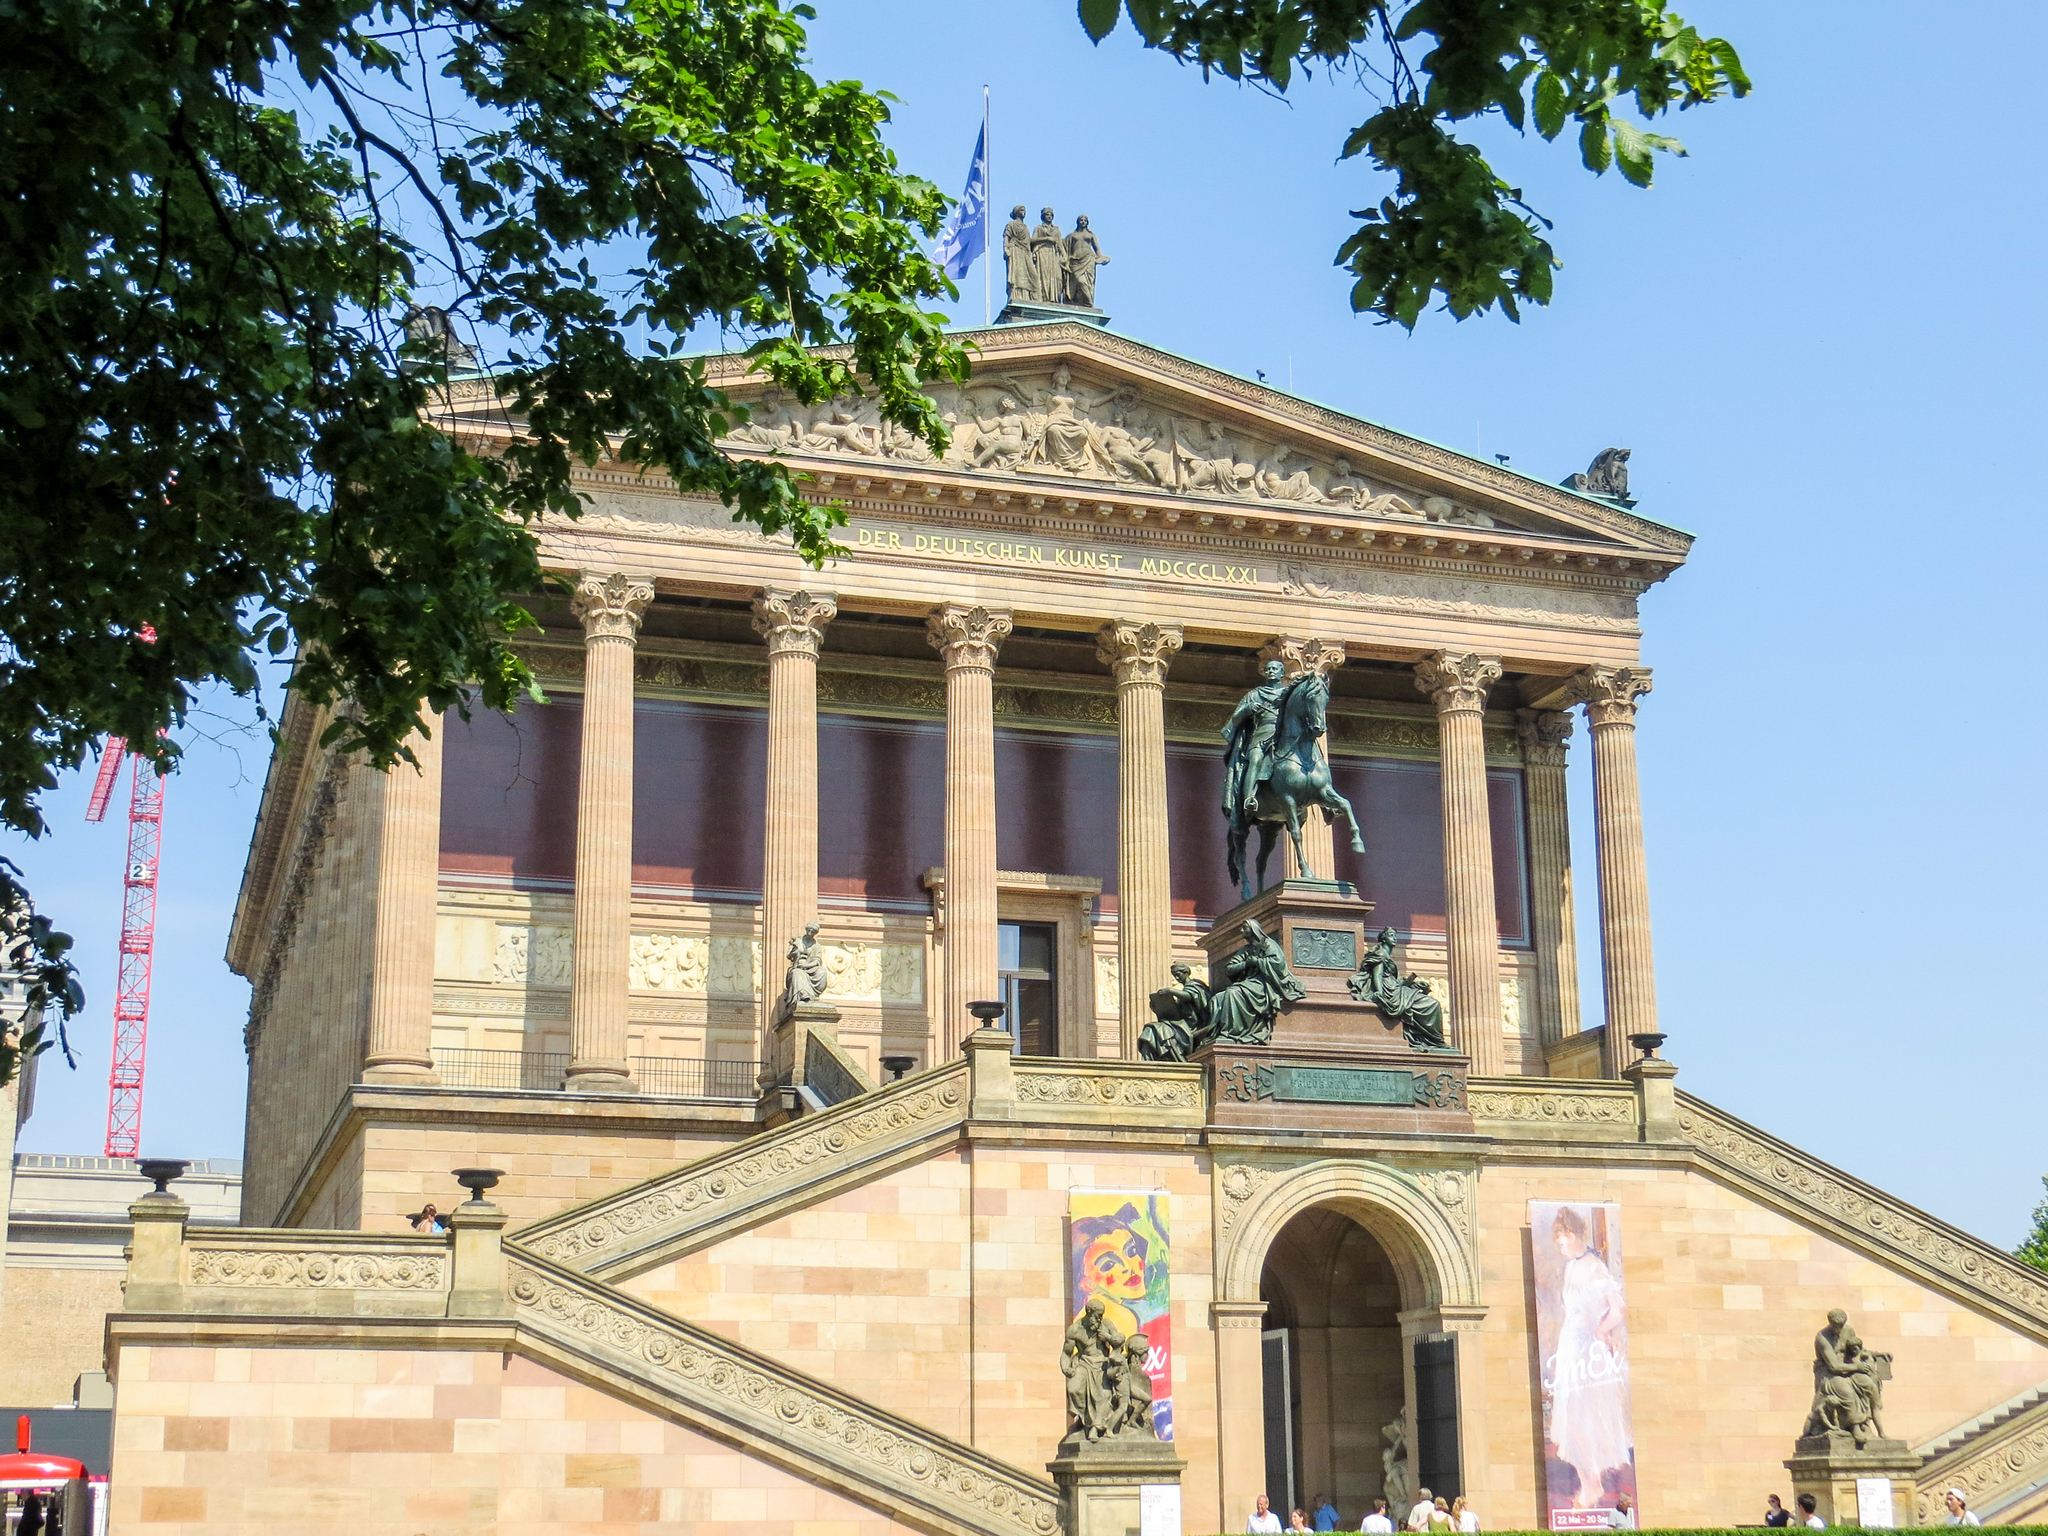 all the great museums is one reason why visit germany